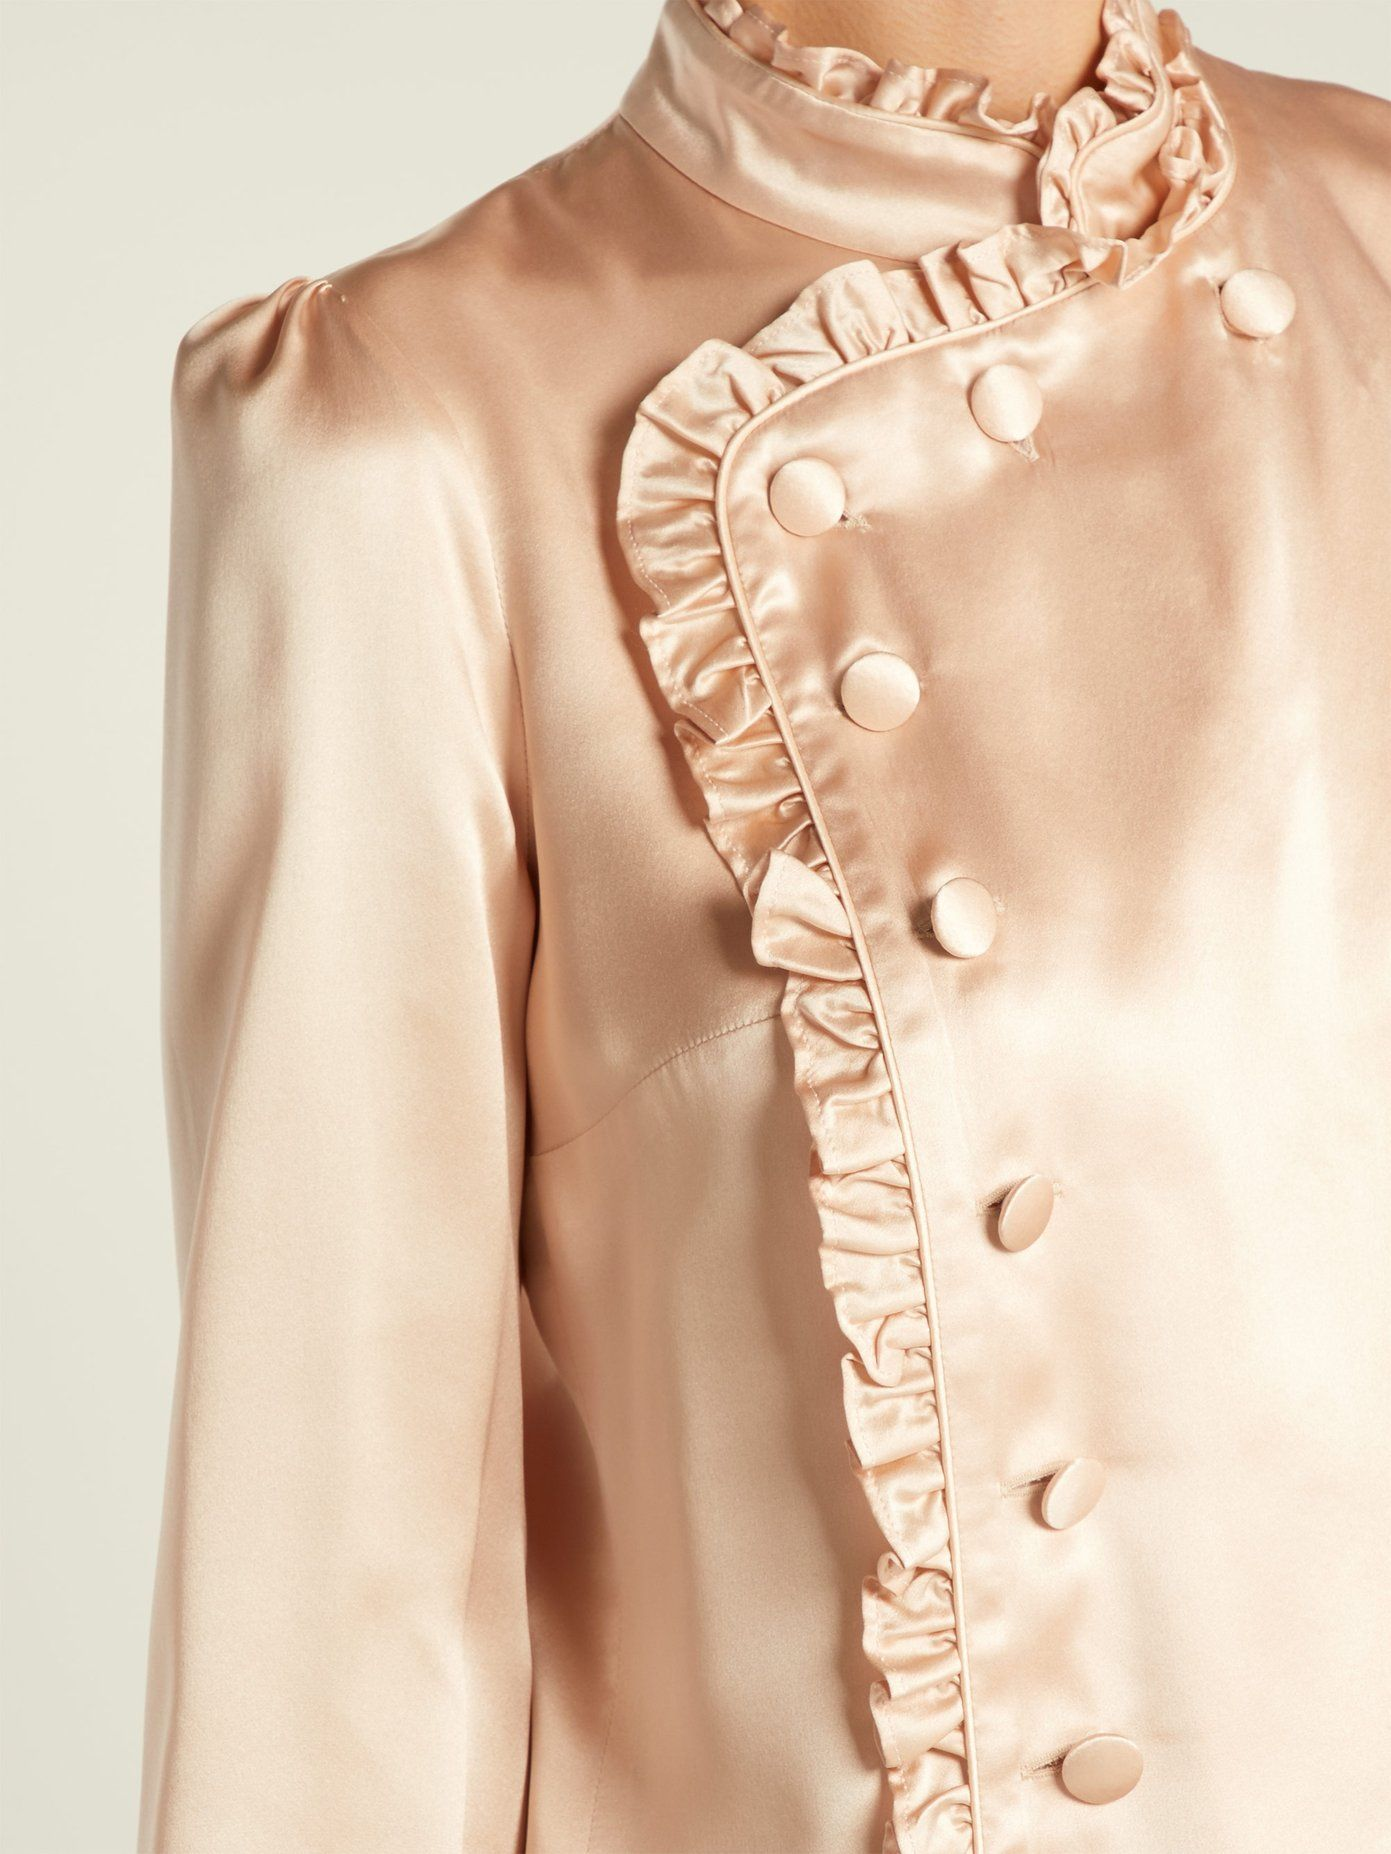 fa9e9b04dd583 Erdem s blush-beige Edlyn blouse infuses Pre-AW18 s subtle  Japanese-inspired undertones with